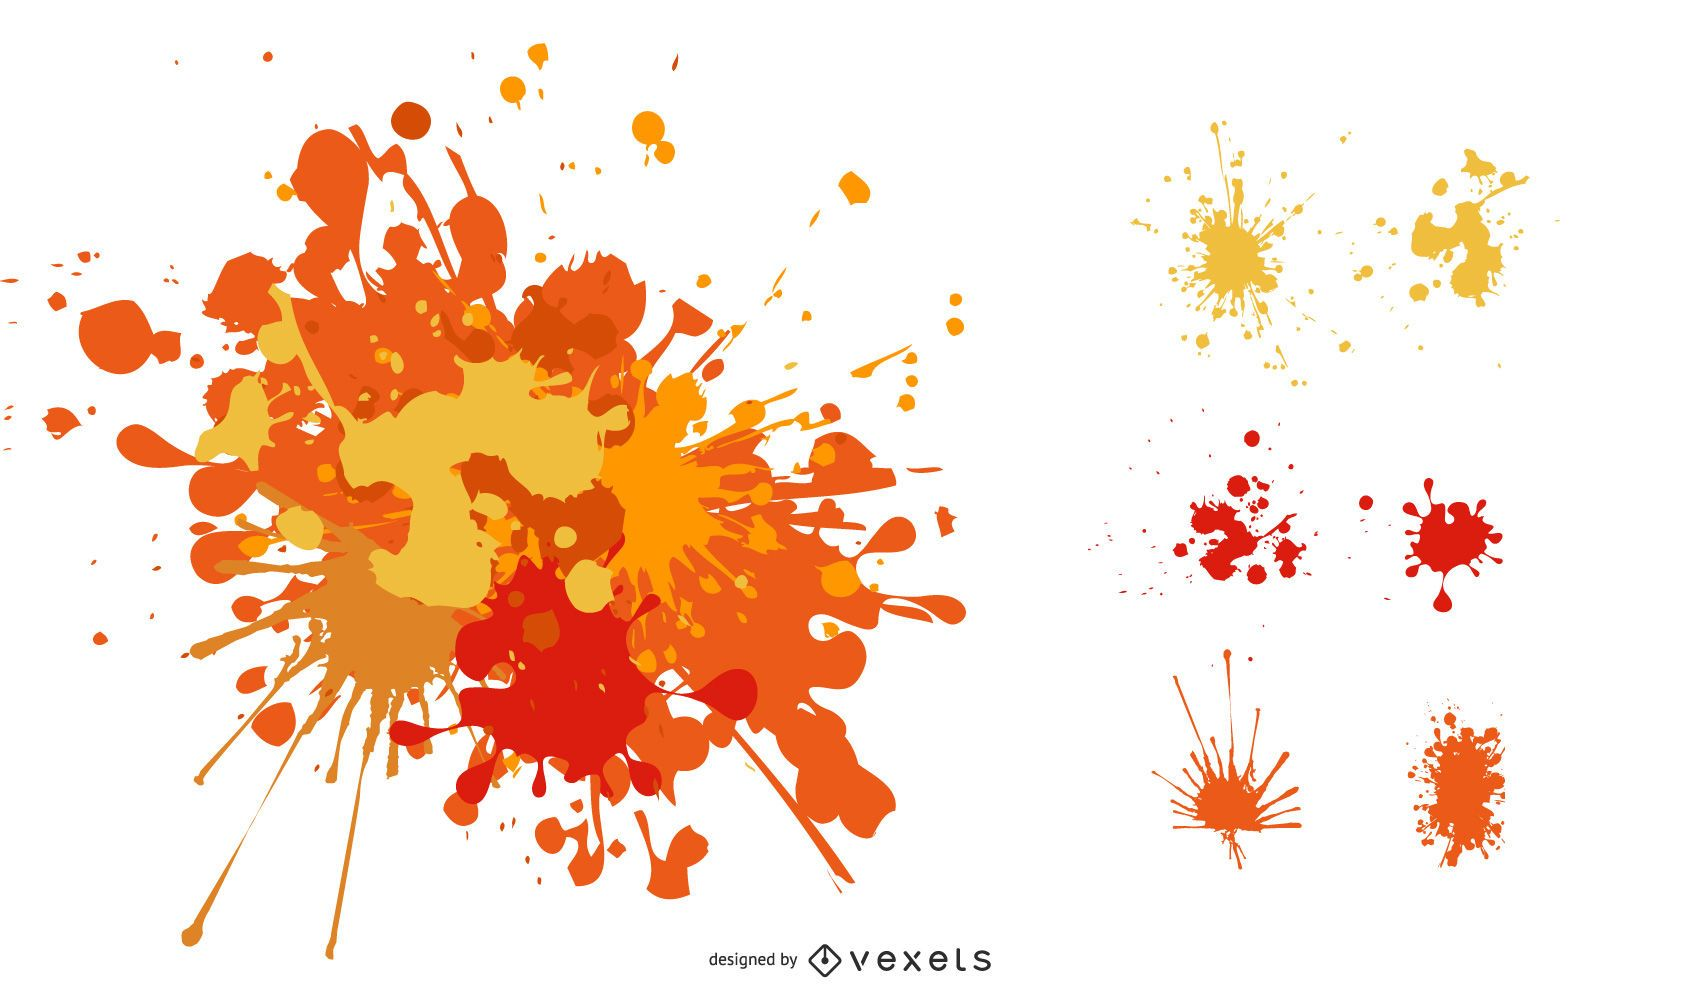 Splats and hatching free vector